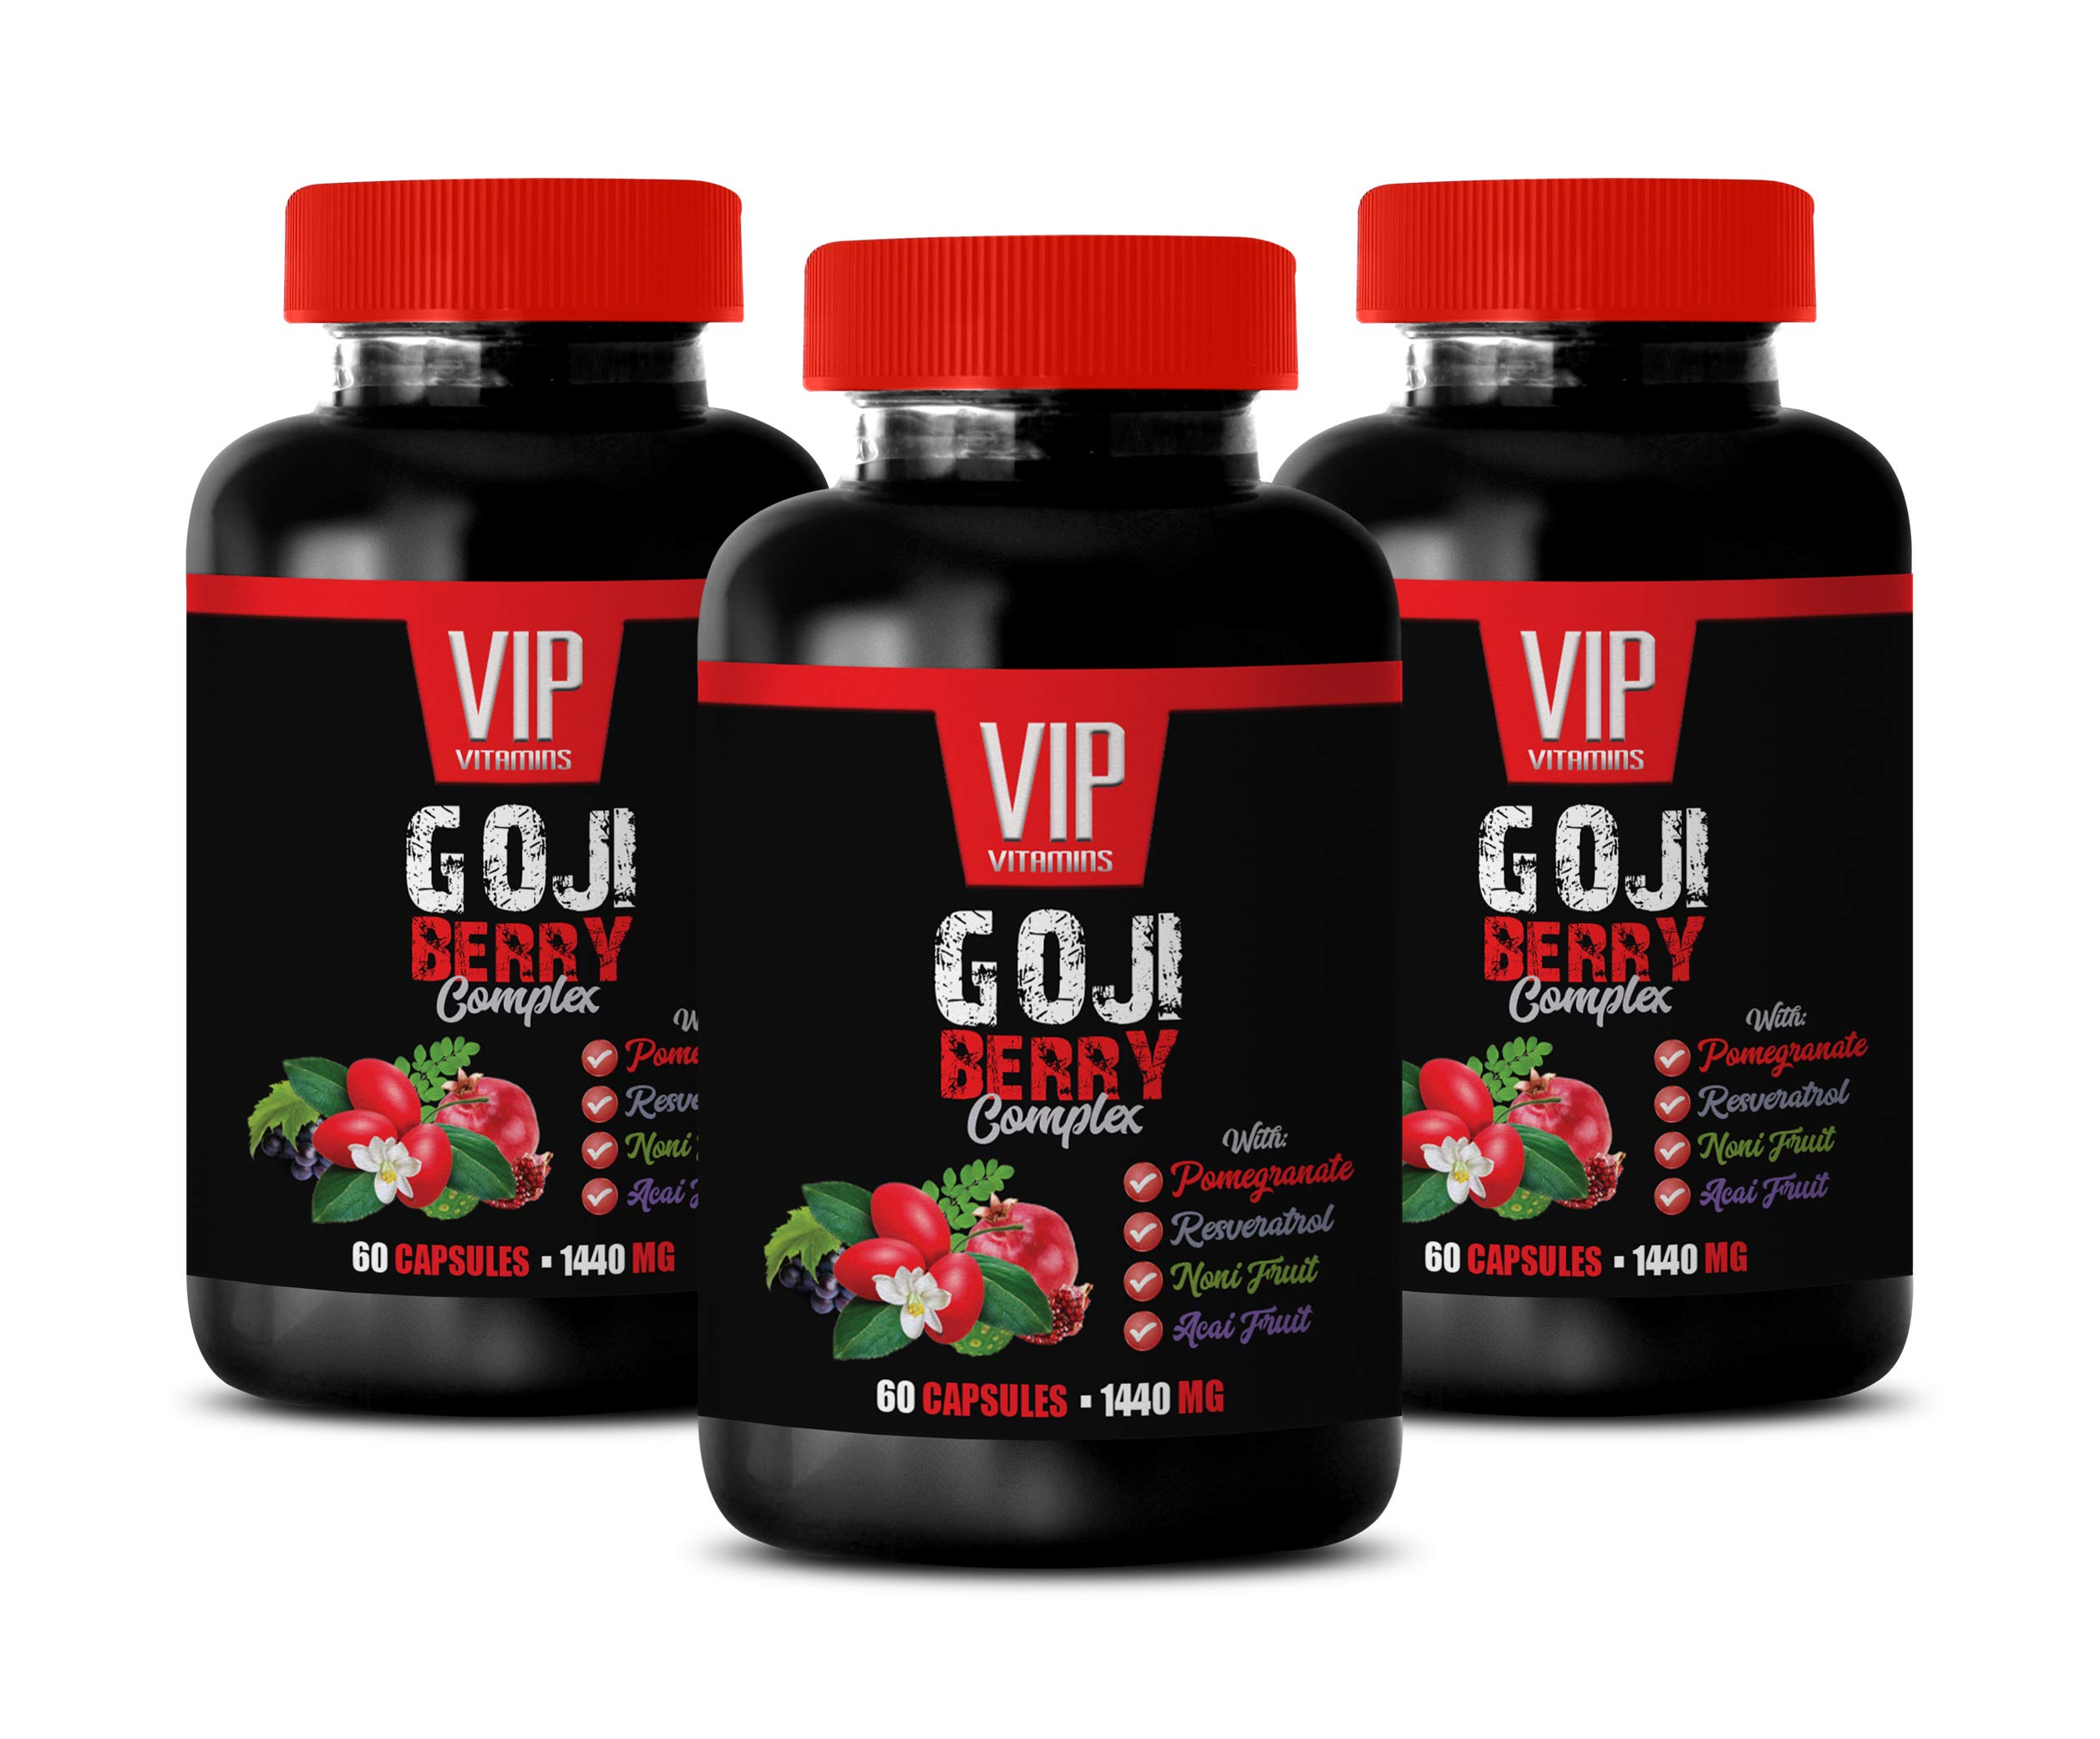 Weight Loss multivitamin for Men - Goji Berry Complex - with Pomegranate, RESVERATROL, NONI, ACAI - Acai Berry Pills - 3 Bottles 180 Capsules